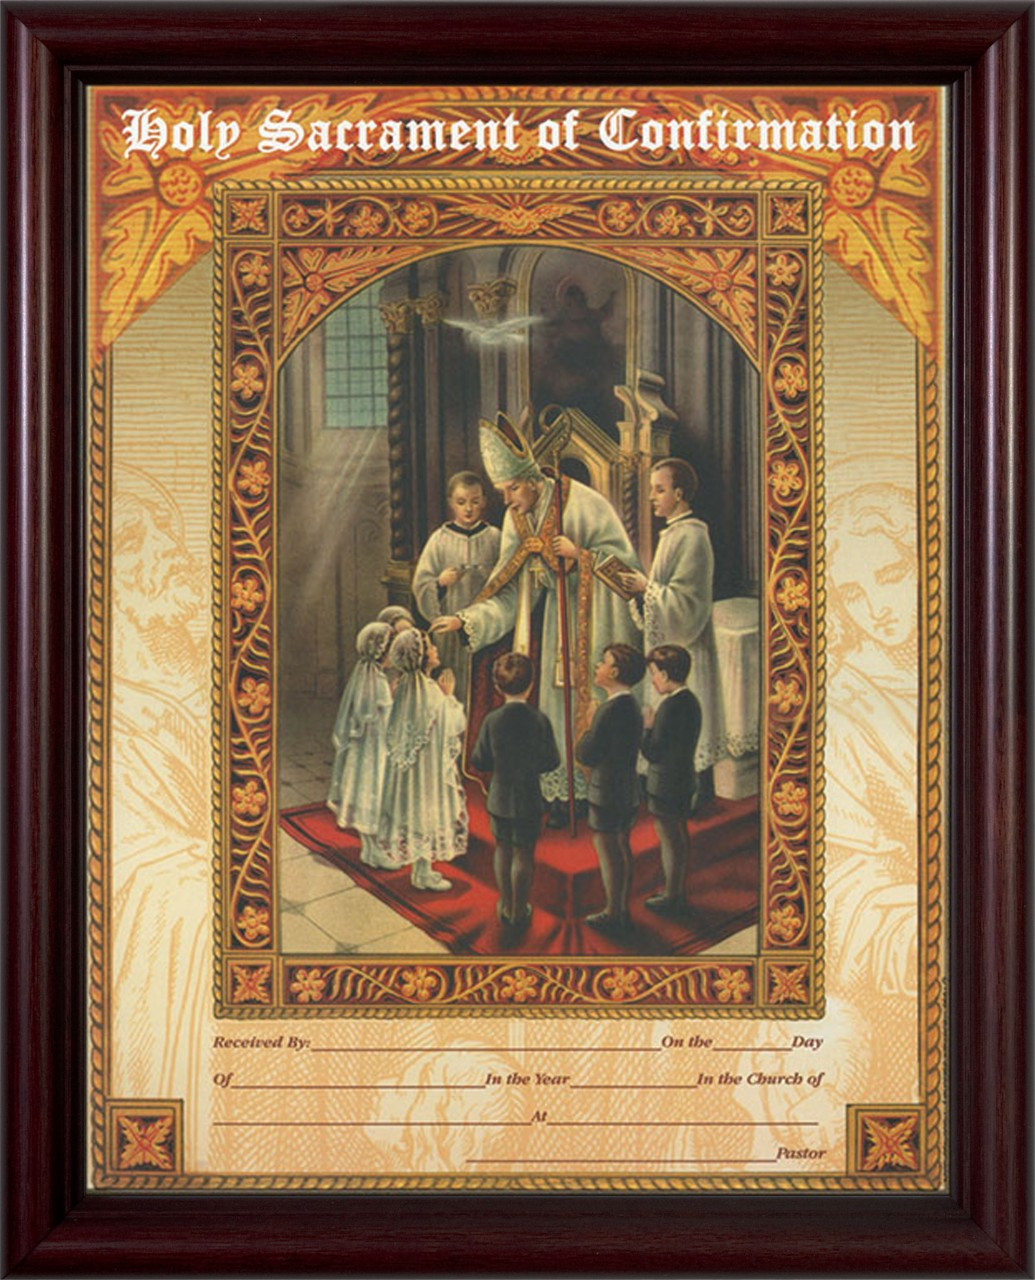 Holy Sacrament Of Confirmation Certificate Cherry Framed Catholic